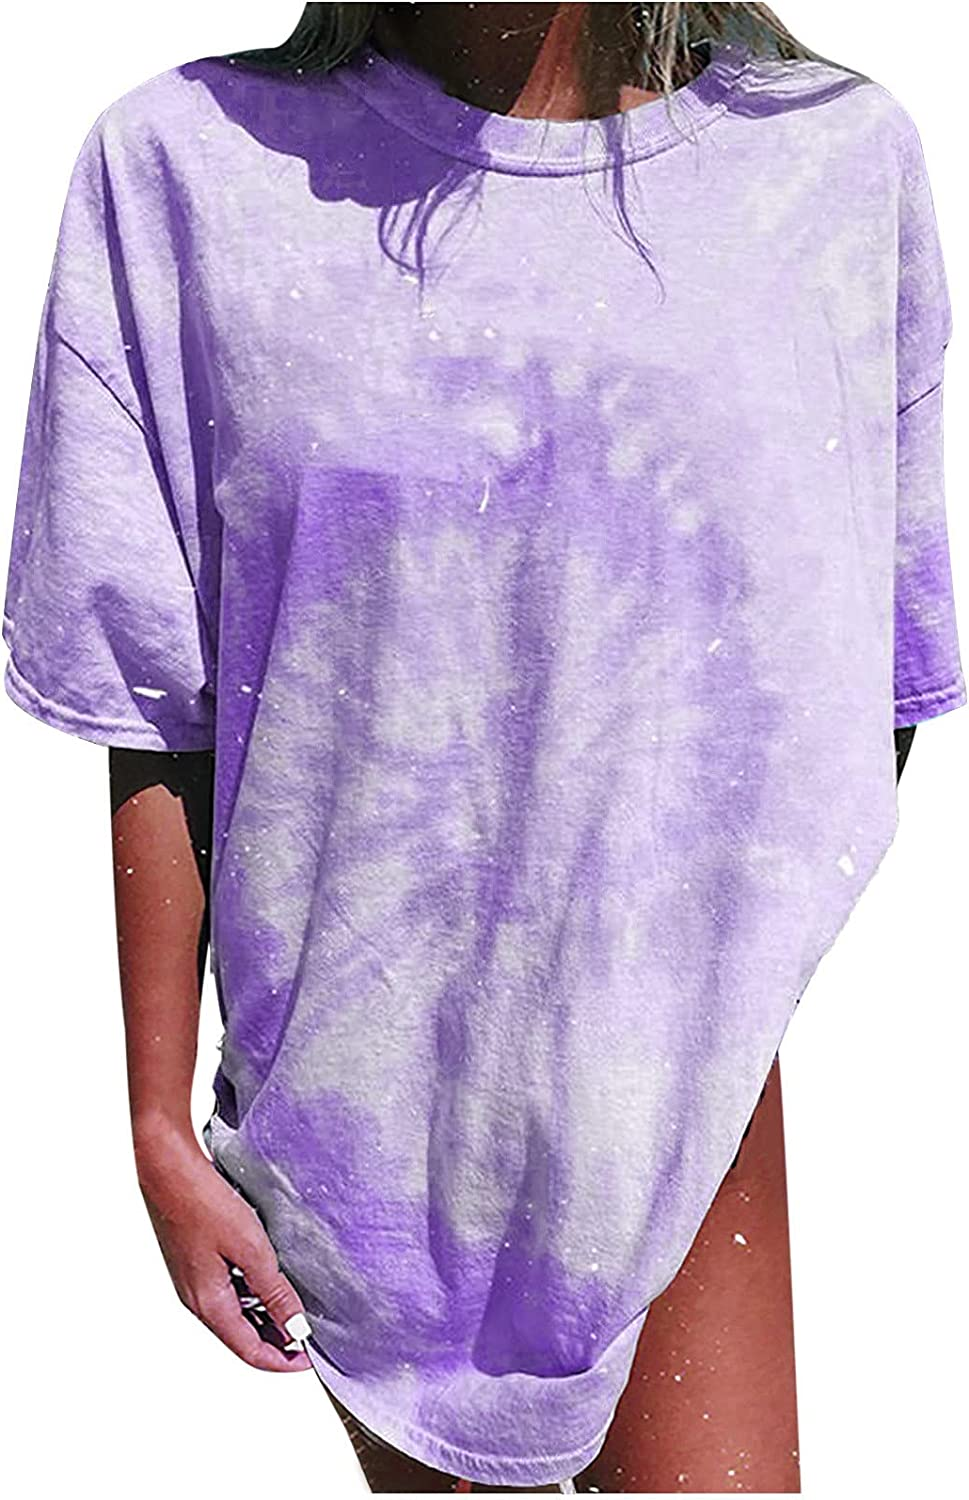 Oversized T Shirts for Women Vintage Moon and Sun Tee Summer Tops Short Sleeve Loose Casual Blouse Plus Size